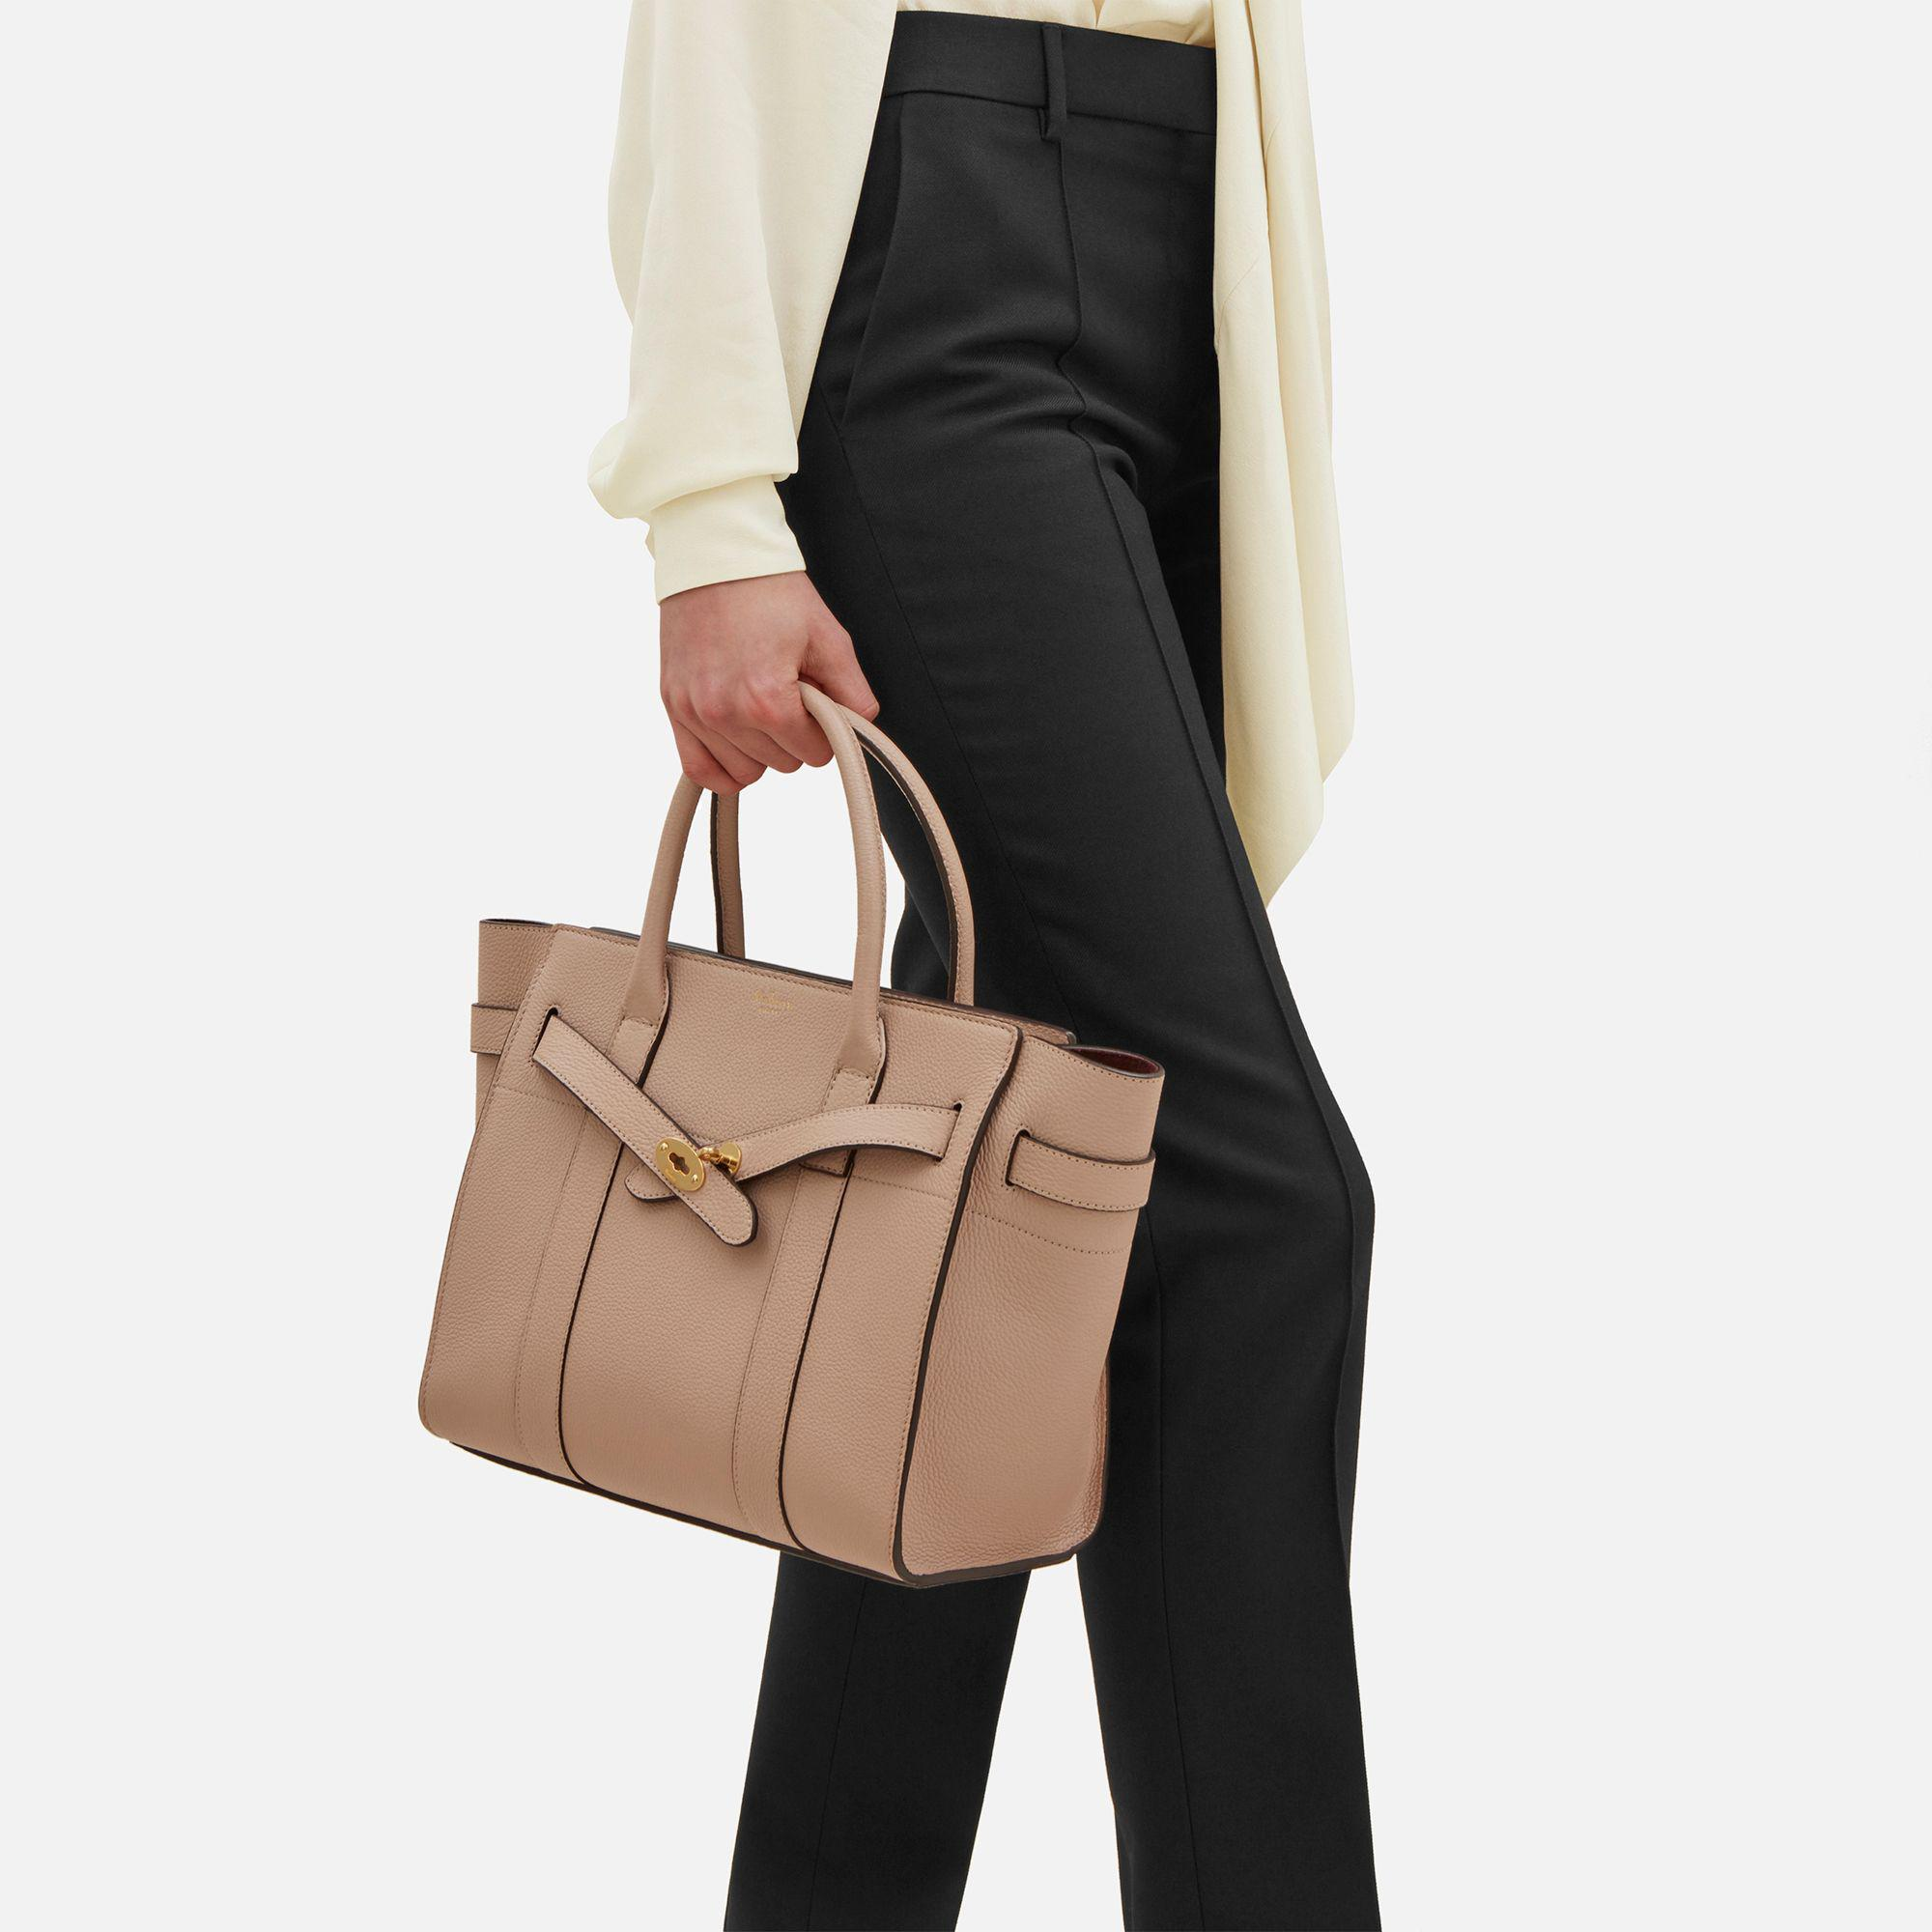 93a69c95d90e ... uk mulberry multicolor small zipped bayswater lyst. view fullscreen  b6522 fd0fc